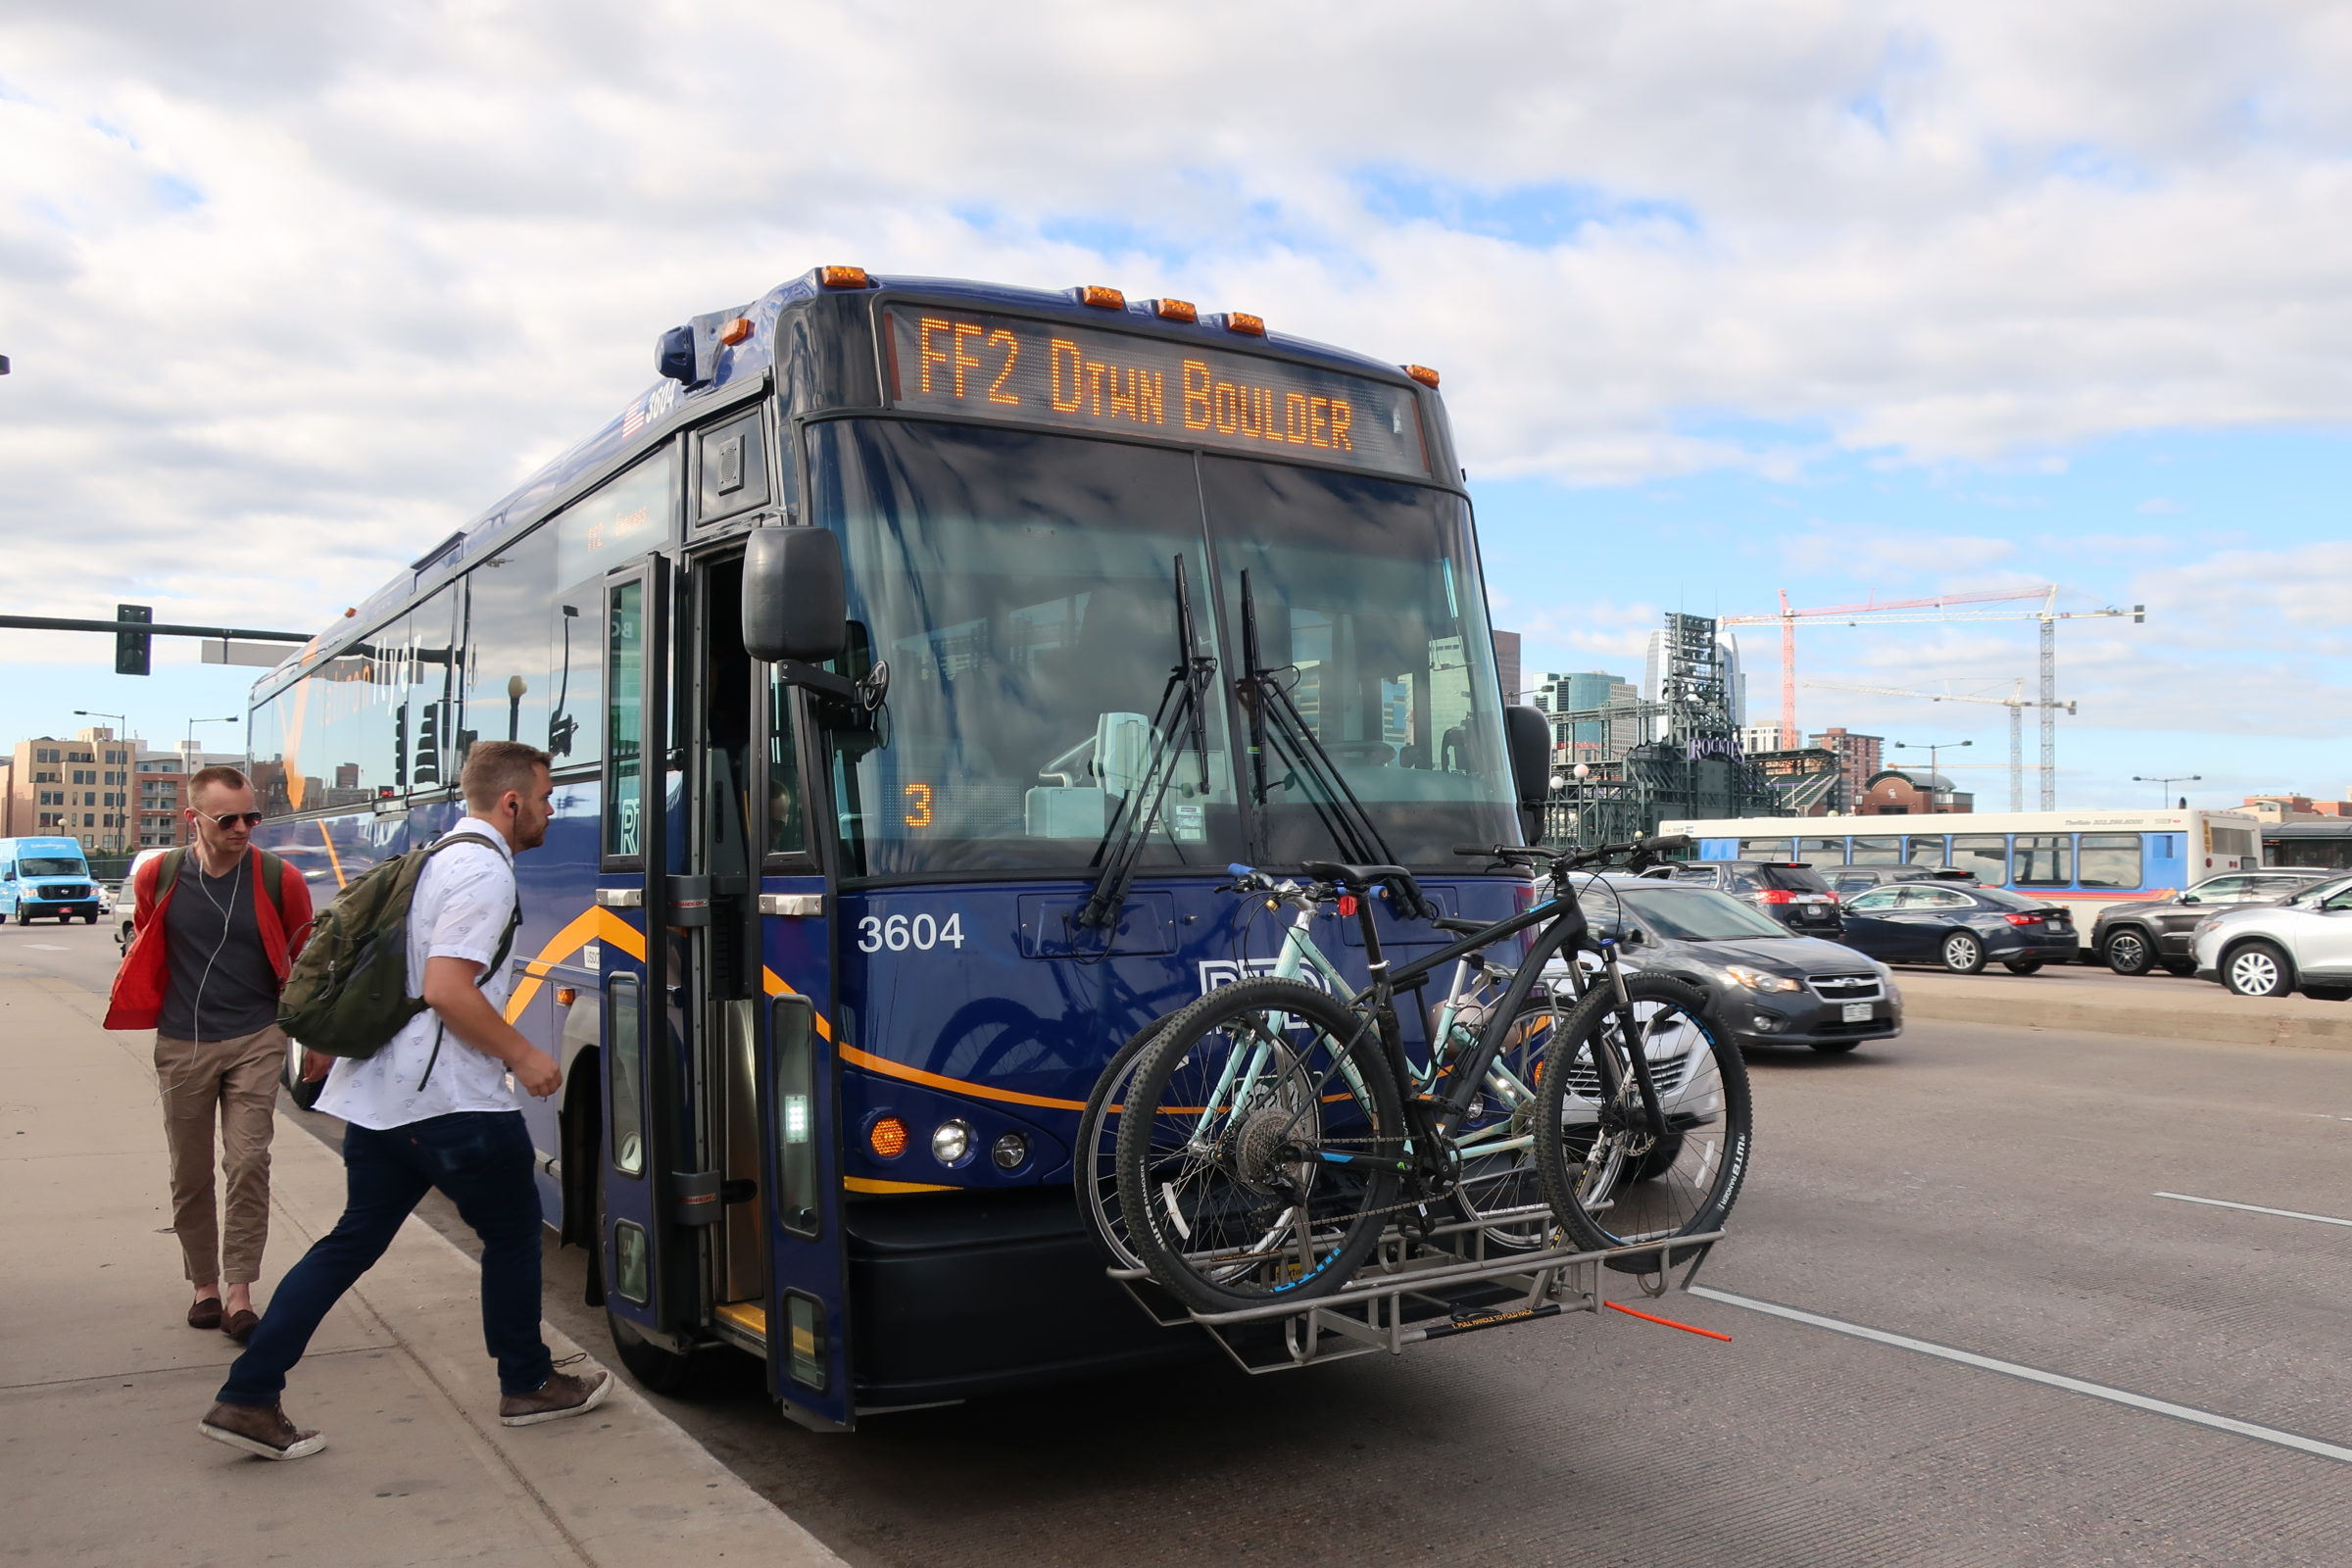 Passengers board the RTD Flatiron Flyer bus in downtown Denver on its way to Boulder on Friday, June 21, 2019